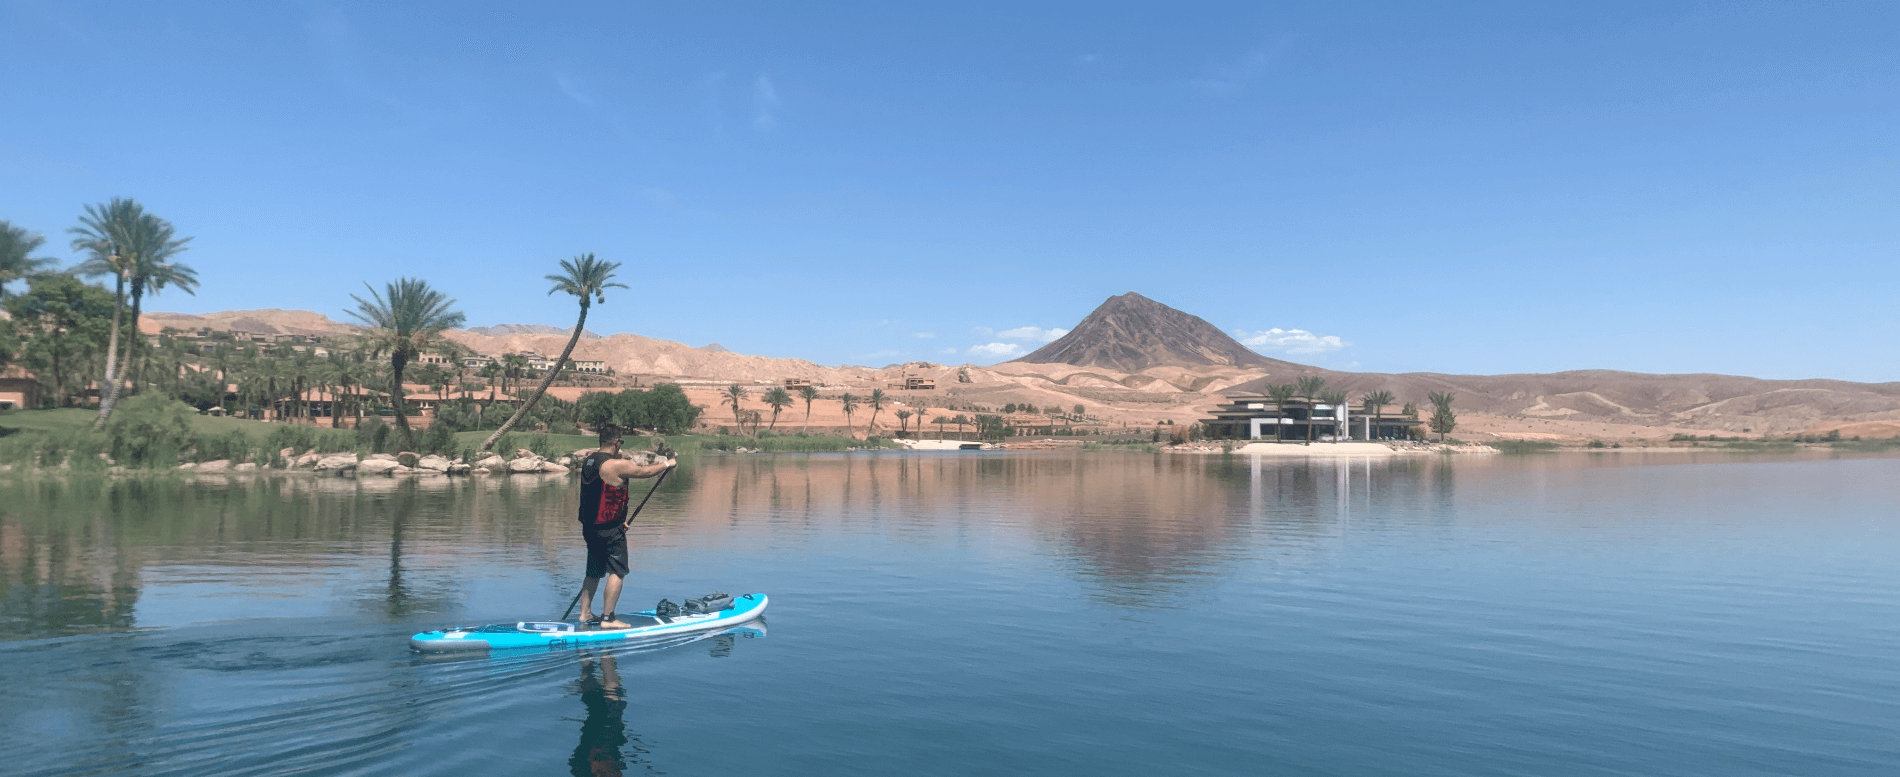 The 10 Best Life Jackets for Paddle Boarding 2021